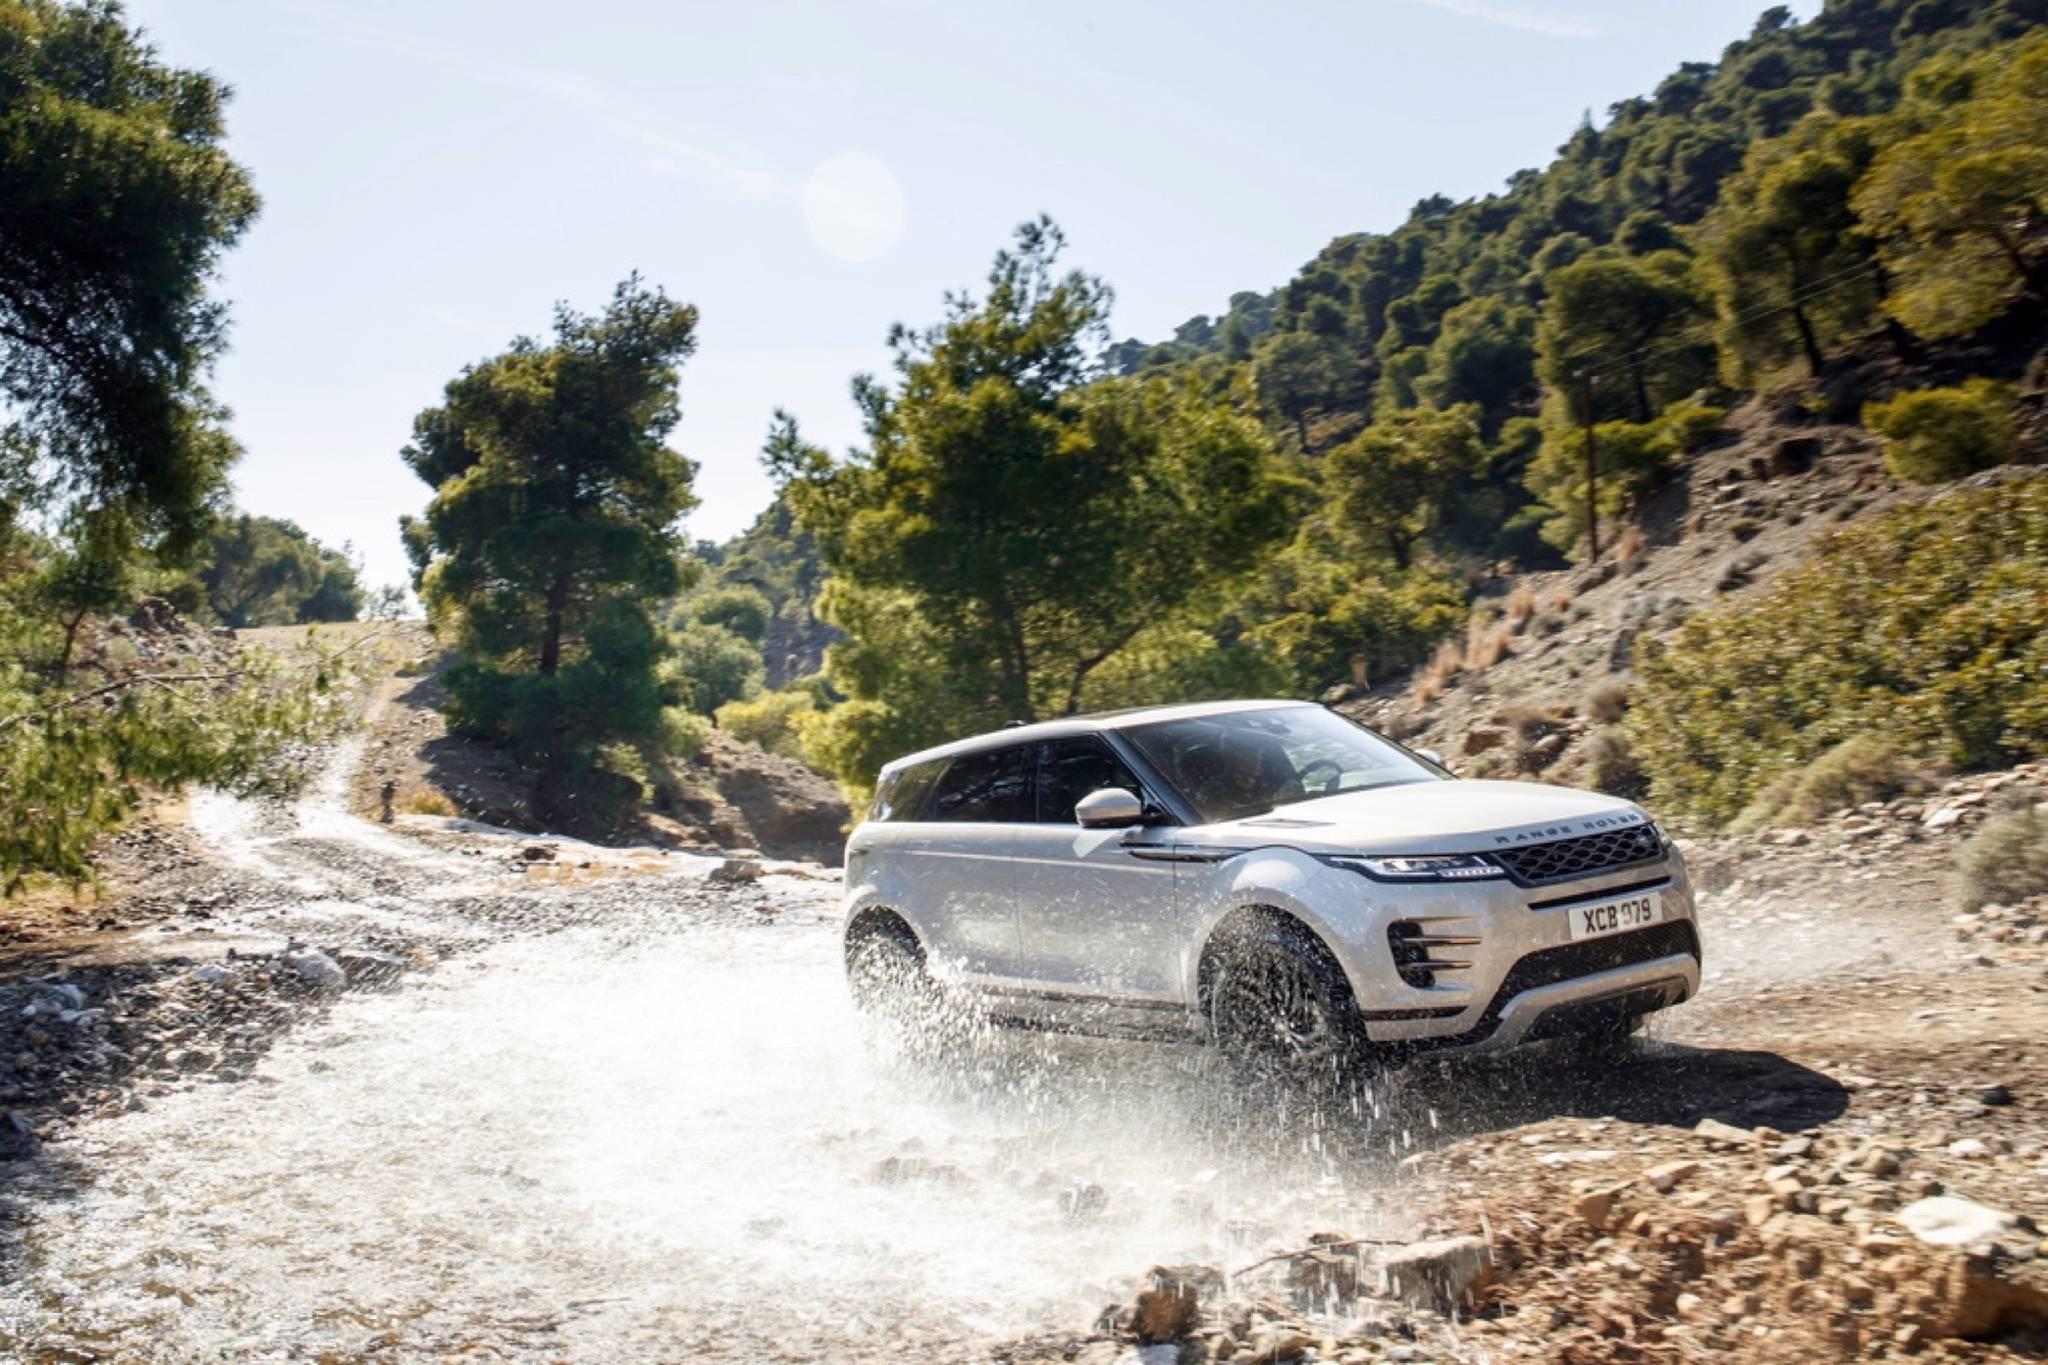 The Evoque first debuted in 2011 and Range Rover managed to sell 772,000 vehicles all over the world – a feat that was unimaginable for a SUV with a small back seat and Range Rover pricing (Submitted)